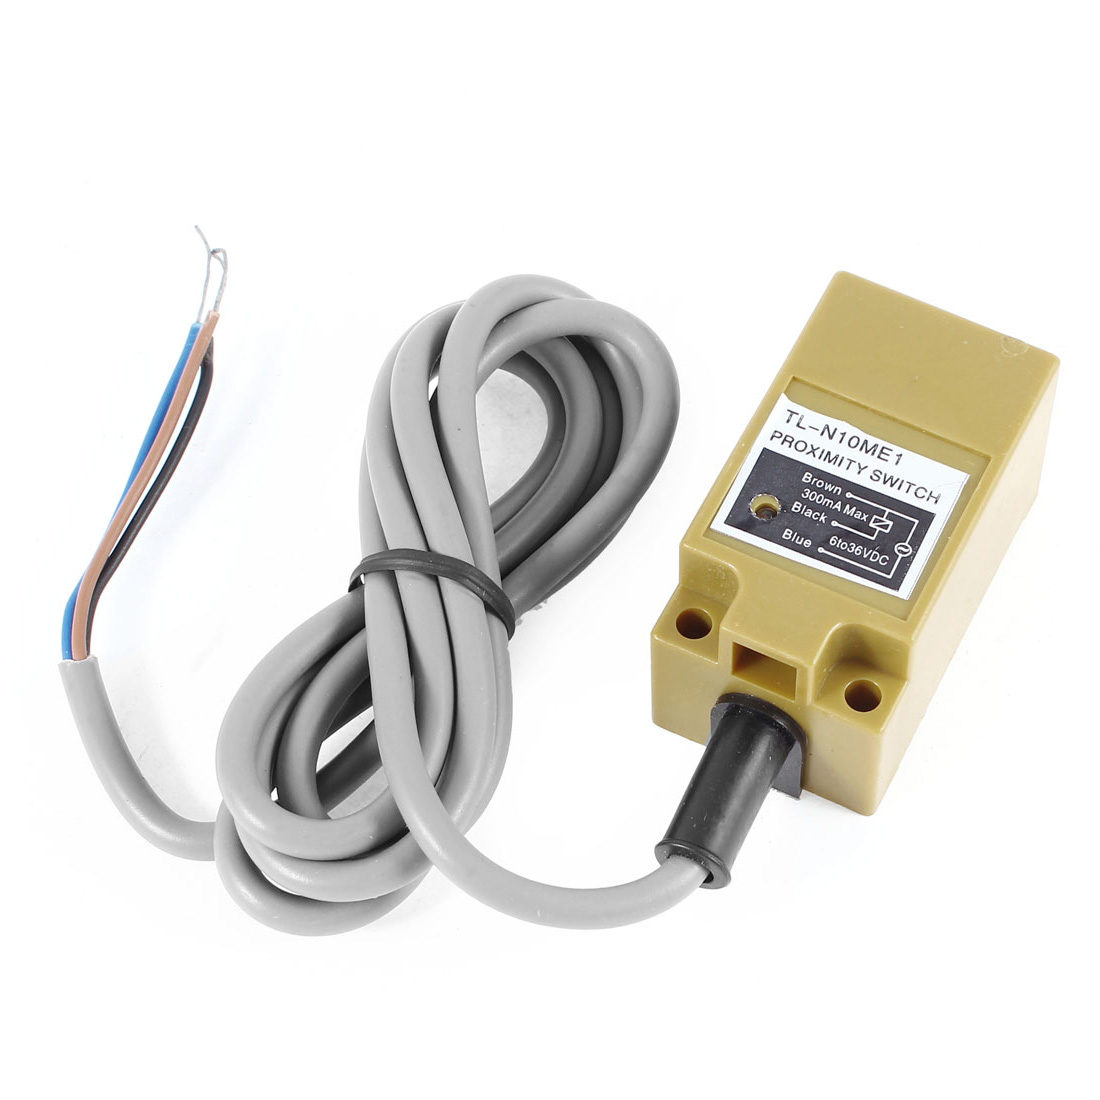 TL-N10ME1 3-wires DC 6-36V 300mA 8mm NPN Normal Open Square Inductive Proximity Sensor Detection Switch